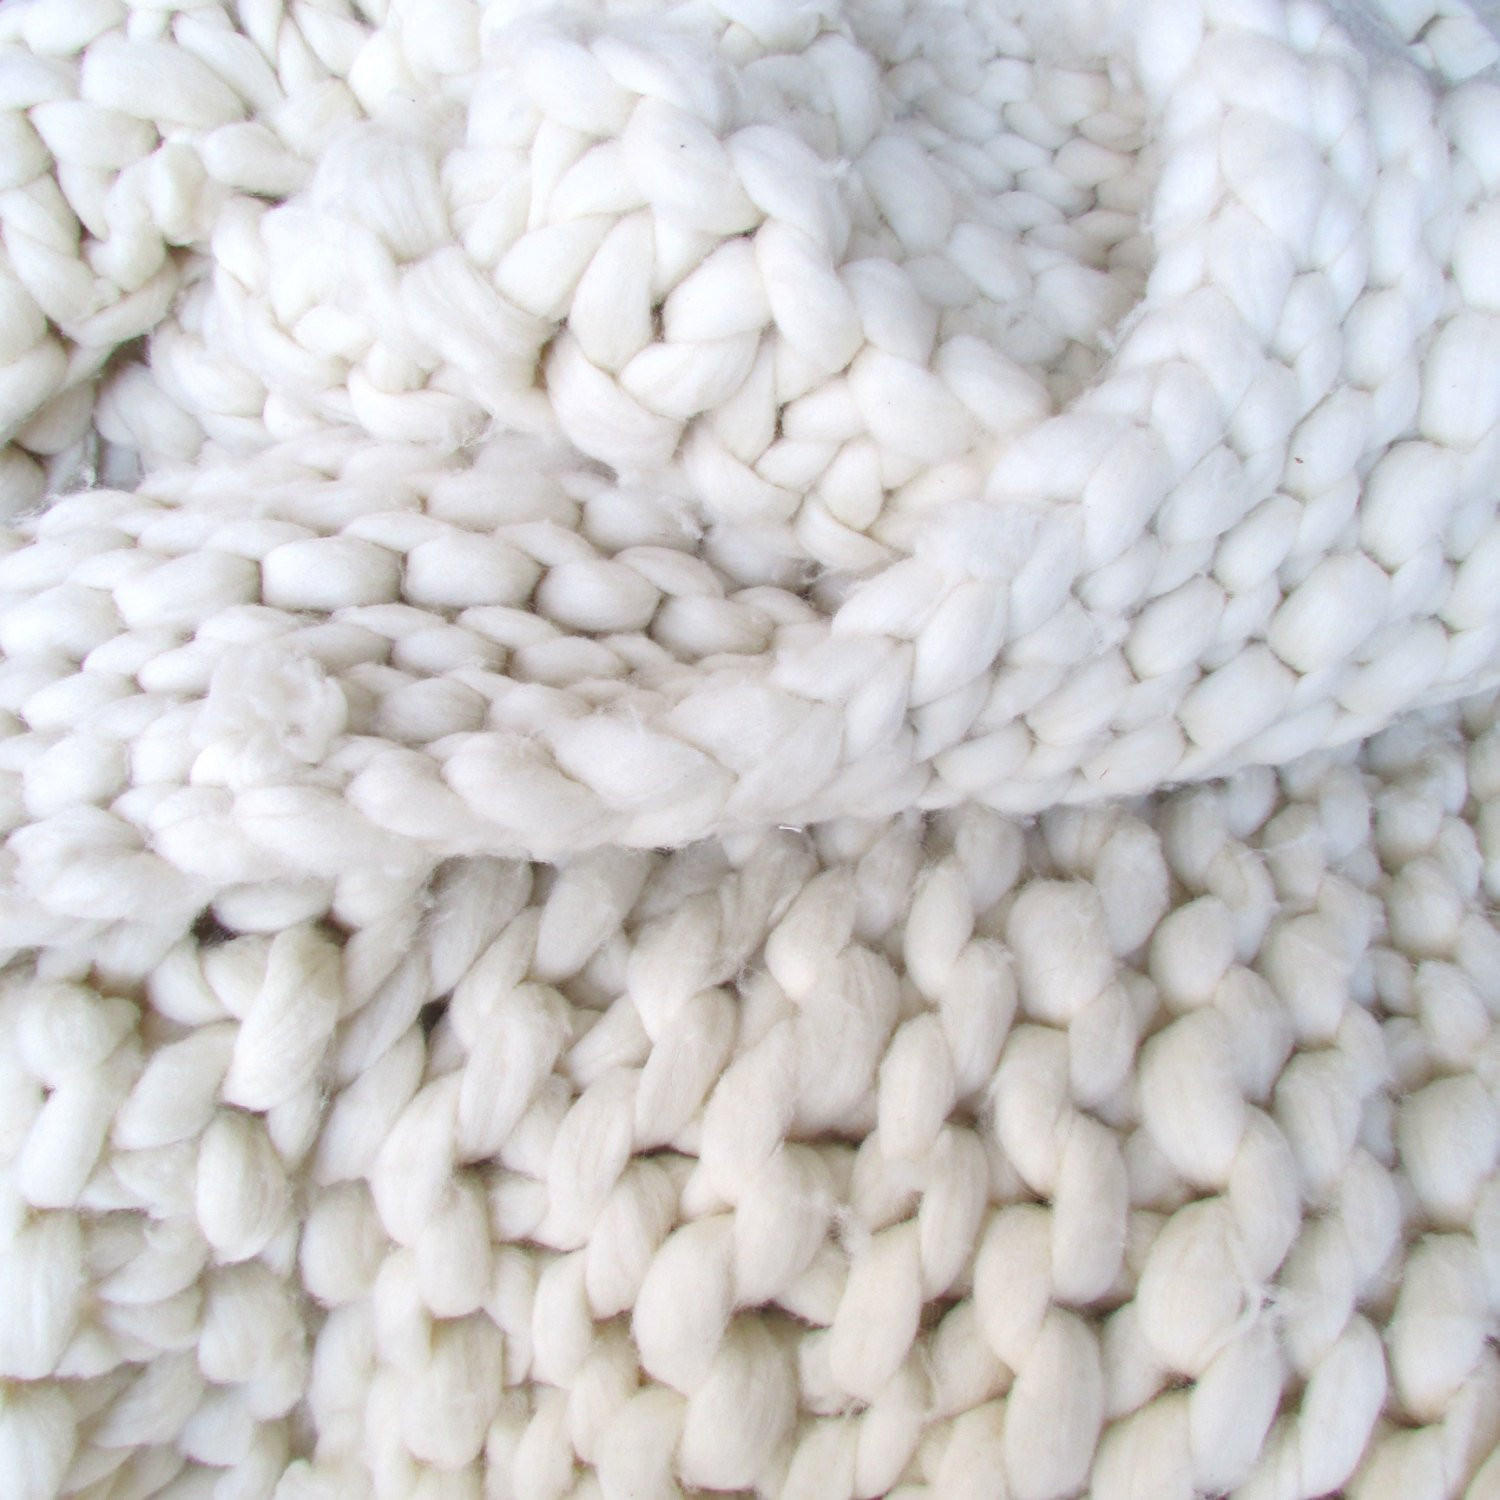 Chunky Knit Blanket Yarn Awesome Super Chunky Hand Knit 50×90 Merino Wool Throw Blanket by Of New 40 Pictures Chunky Knit Blanket Yarn